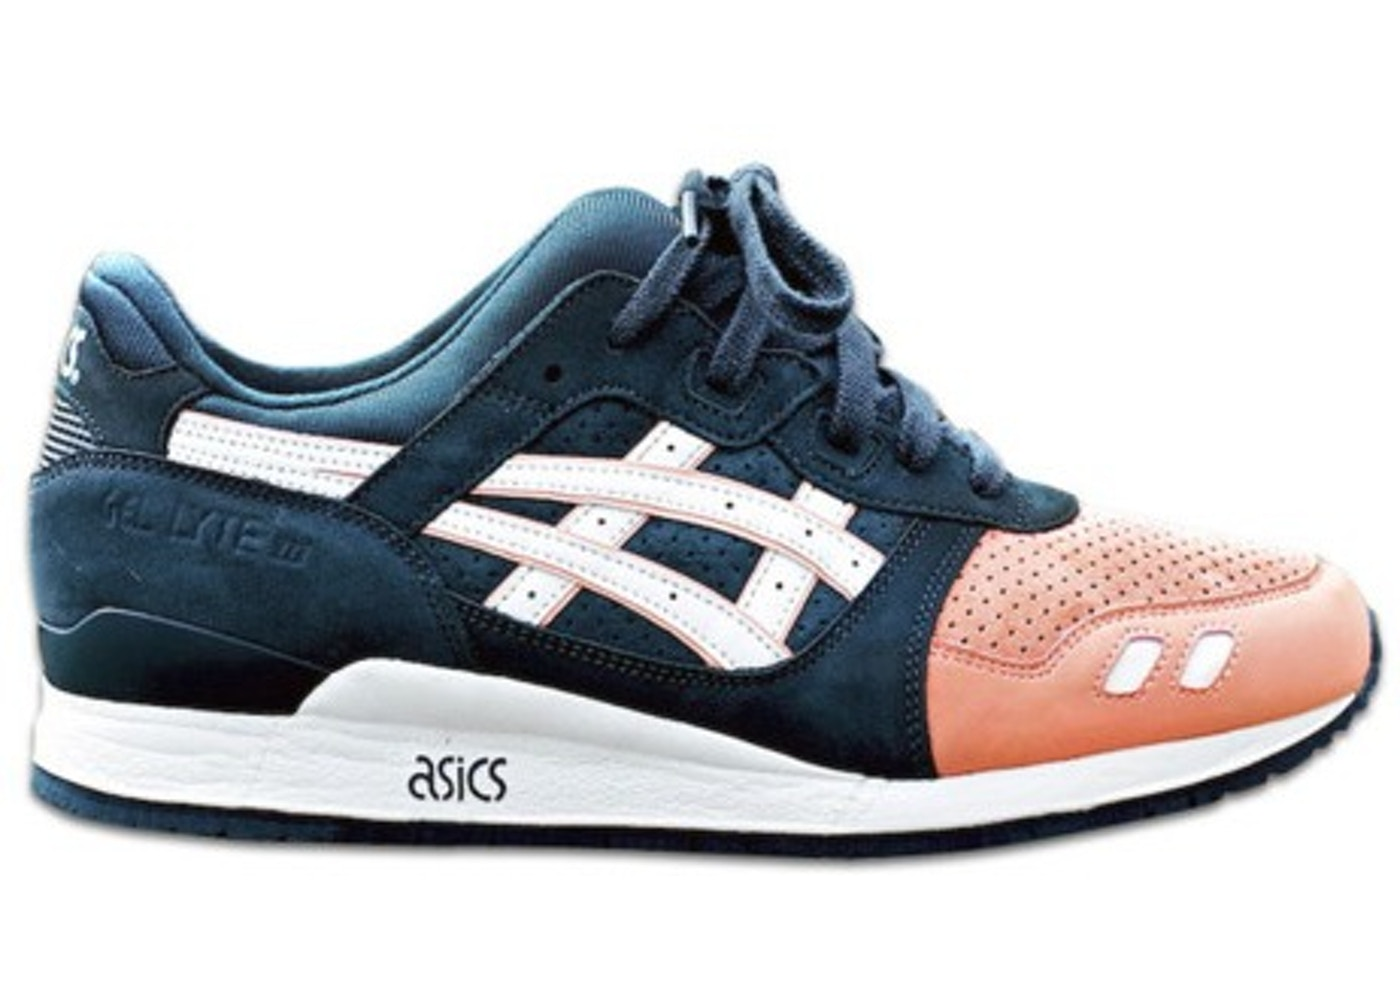 asics gel lyte iii ronnie fieg salmon toes. Black Bedroom Furniture Sets. Home Design Ideas